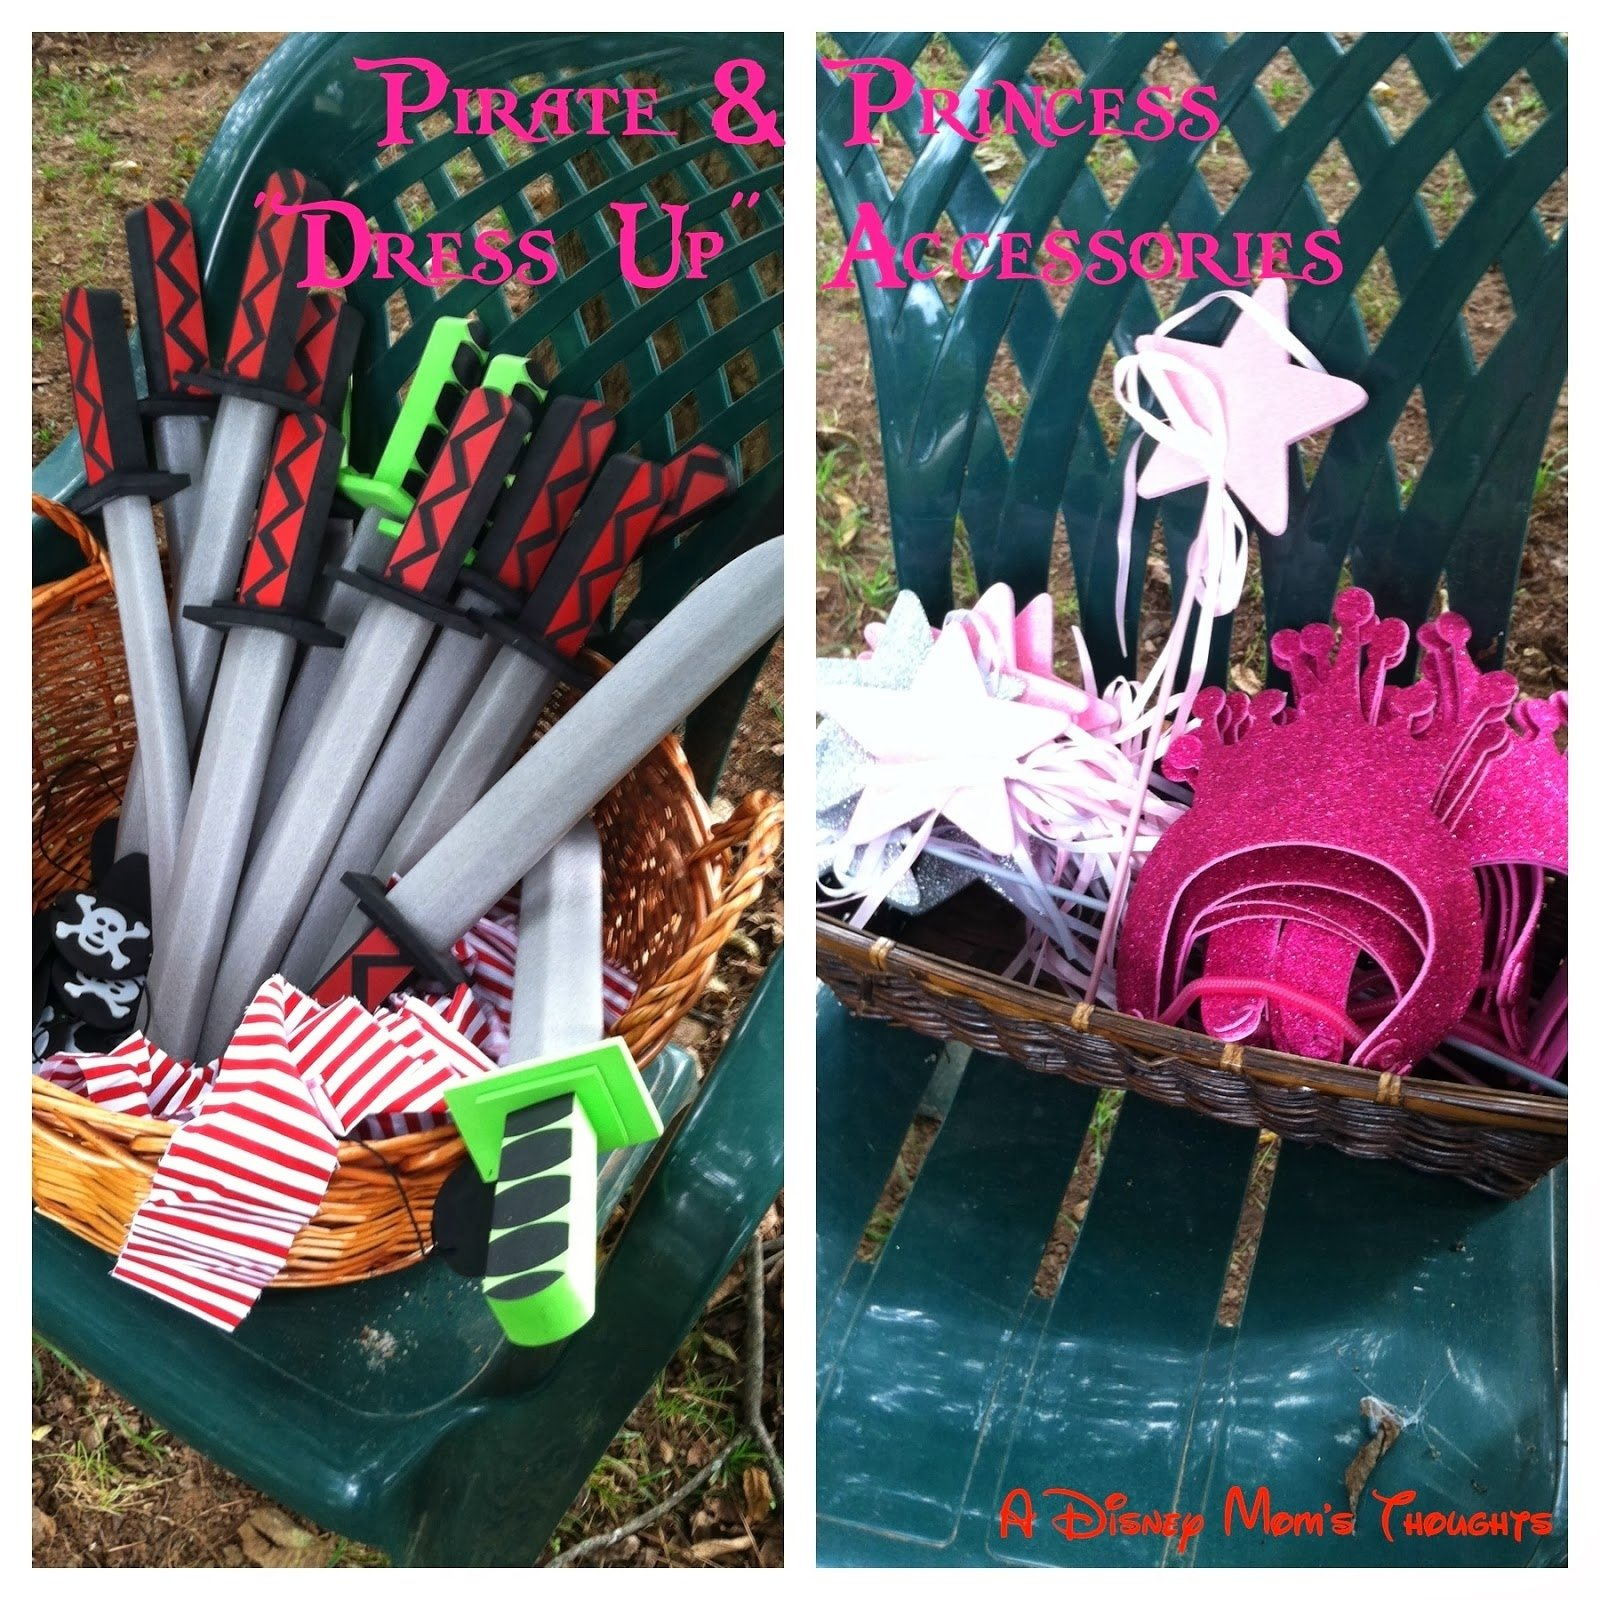 10 Awesome Princess And Pirate Party Ideas pirate and princess birthday party archives a disney moms thoughts 1 2020